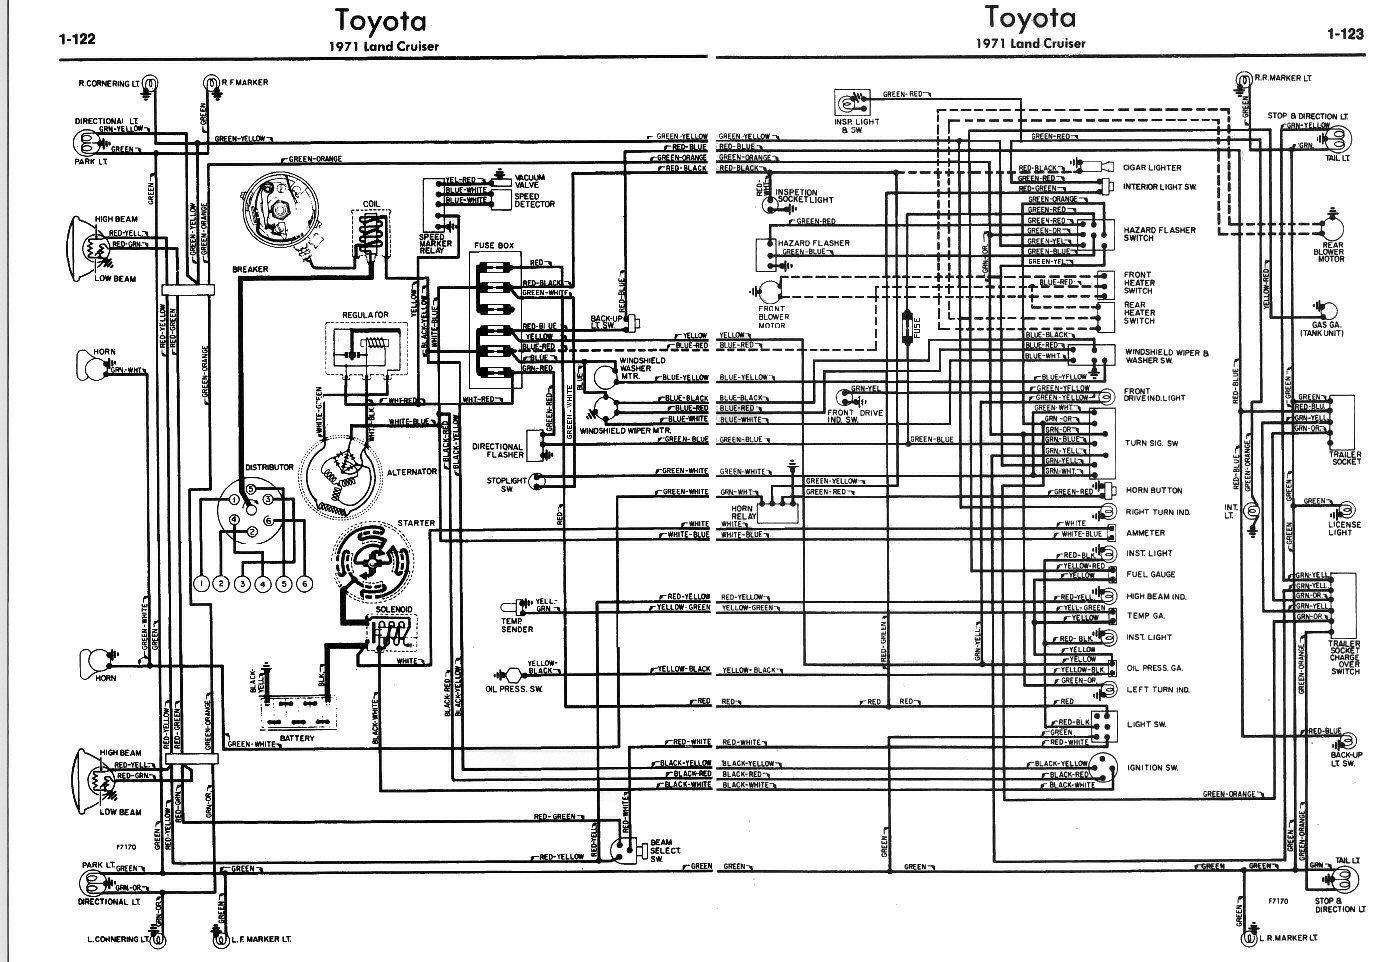 1971 untitled document fj40 wiring diagram at readyjetset.co